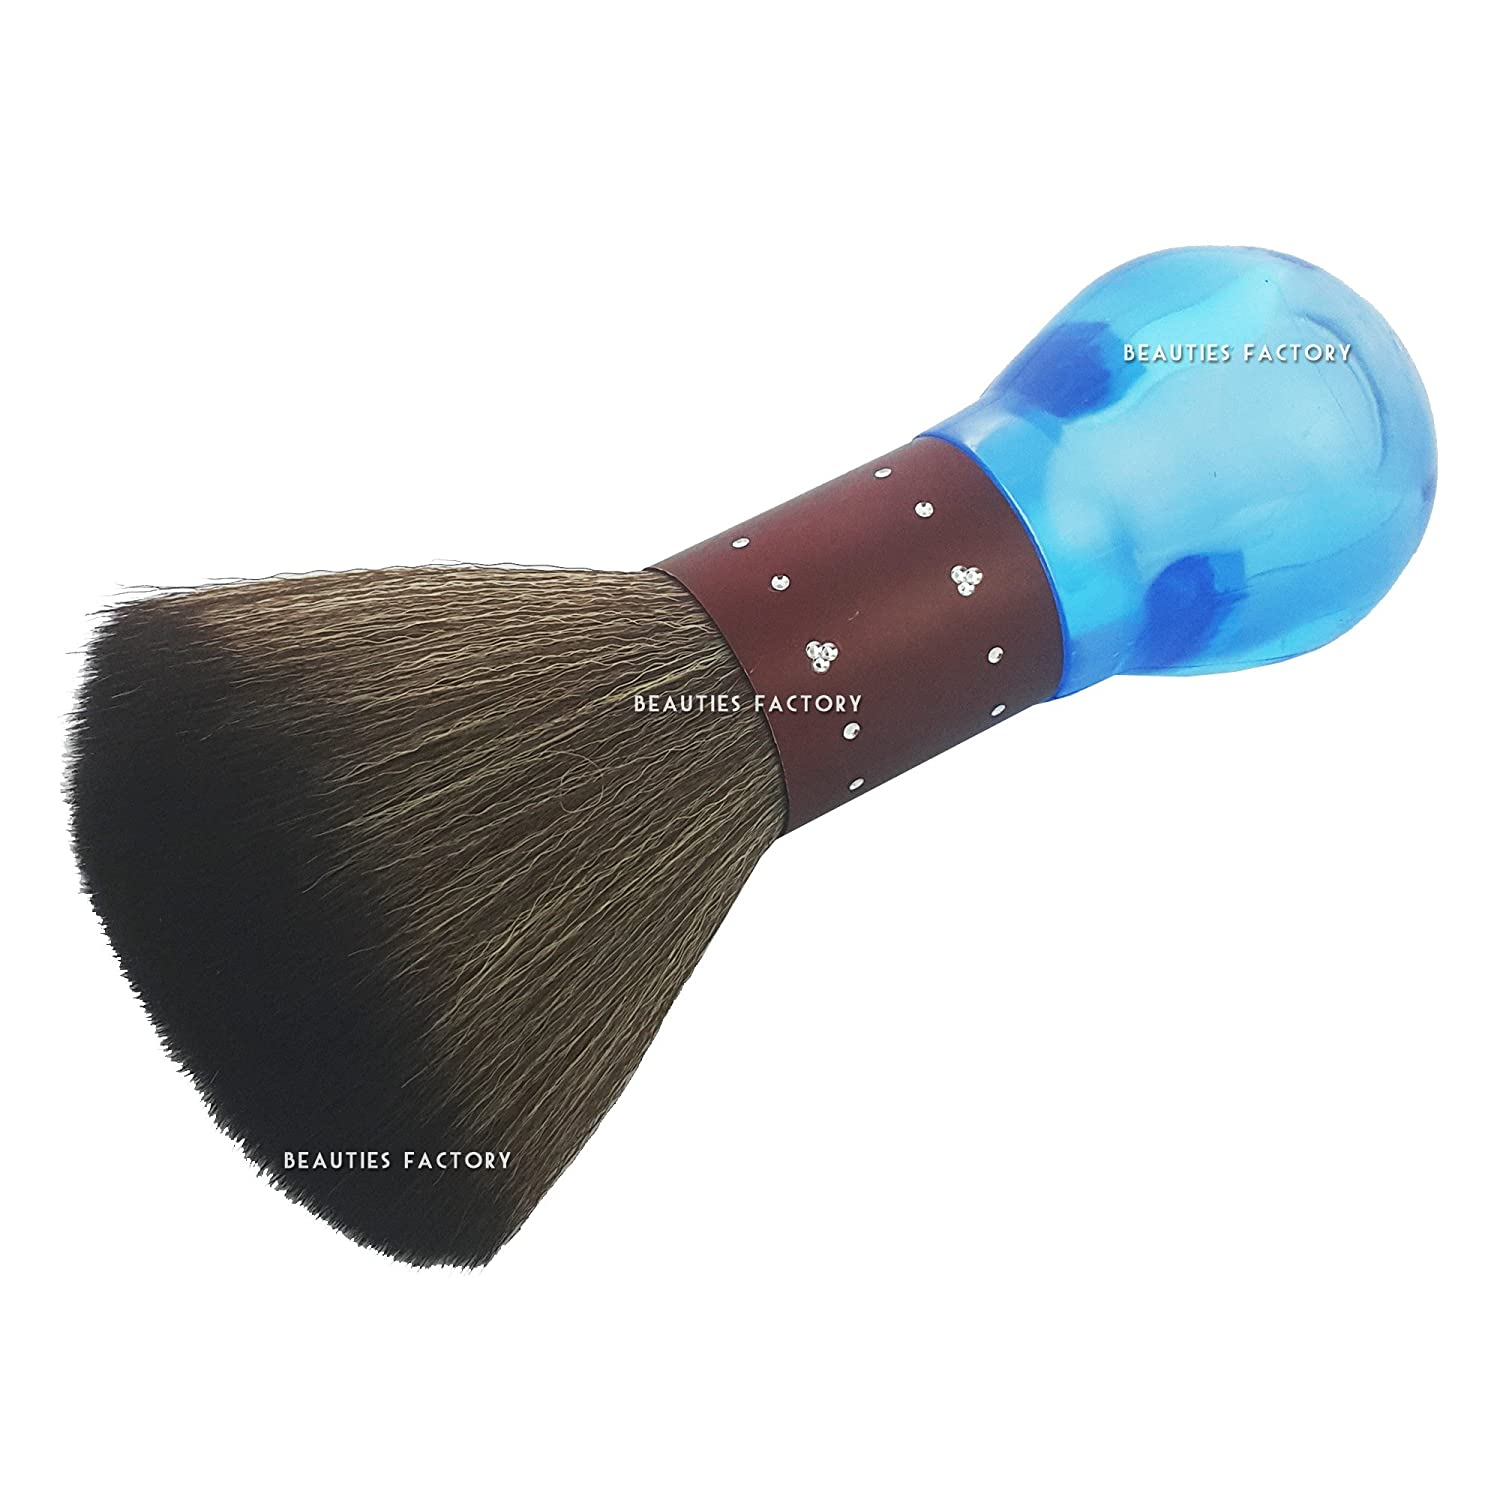 Beauties Factory Hair Cutting Hairdressing Salon Neck Duster Brush For Barber Hairdresser